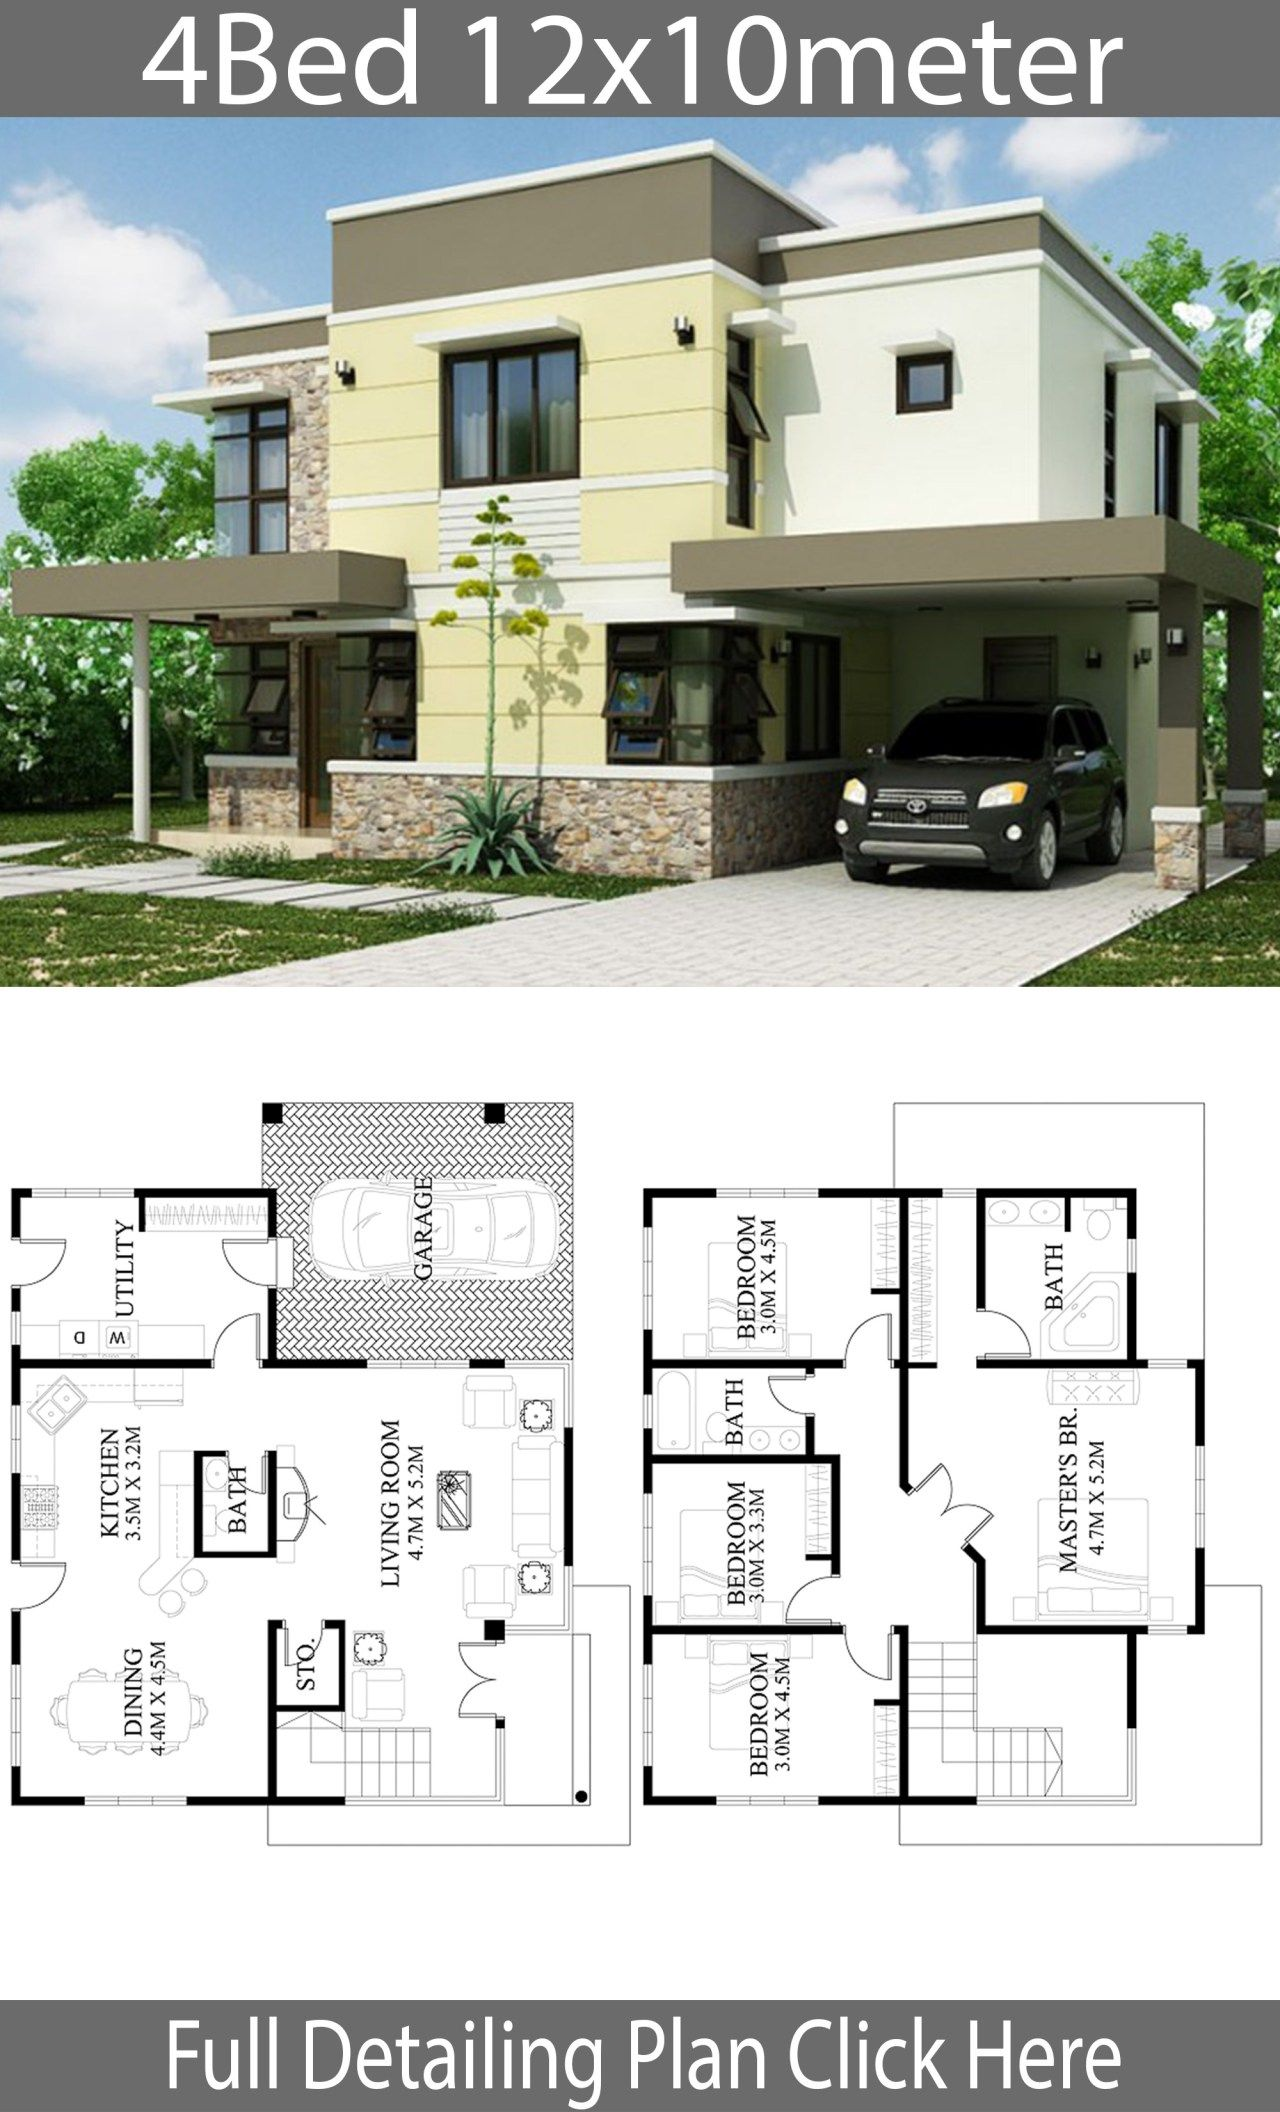 Home Design Plan 12x10m With 4 Bedrooms Home Ideas Architectural House Plans Modern House Plans Model House Plan